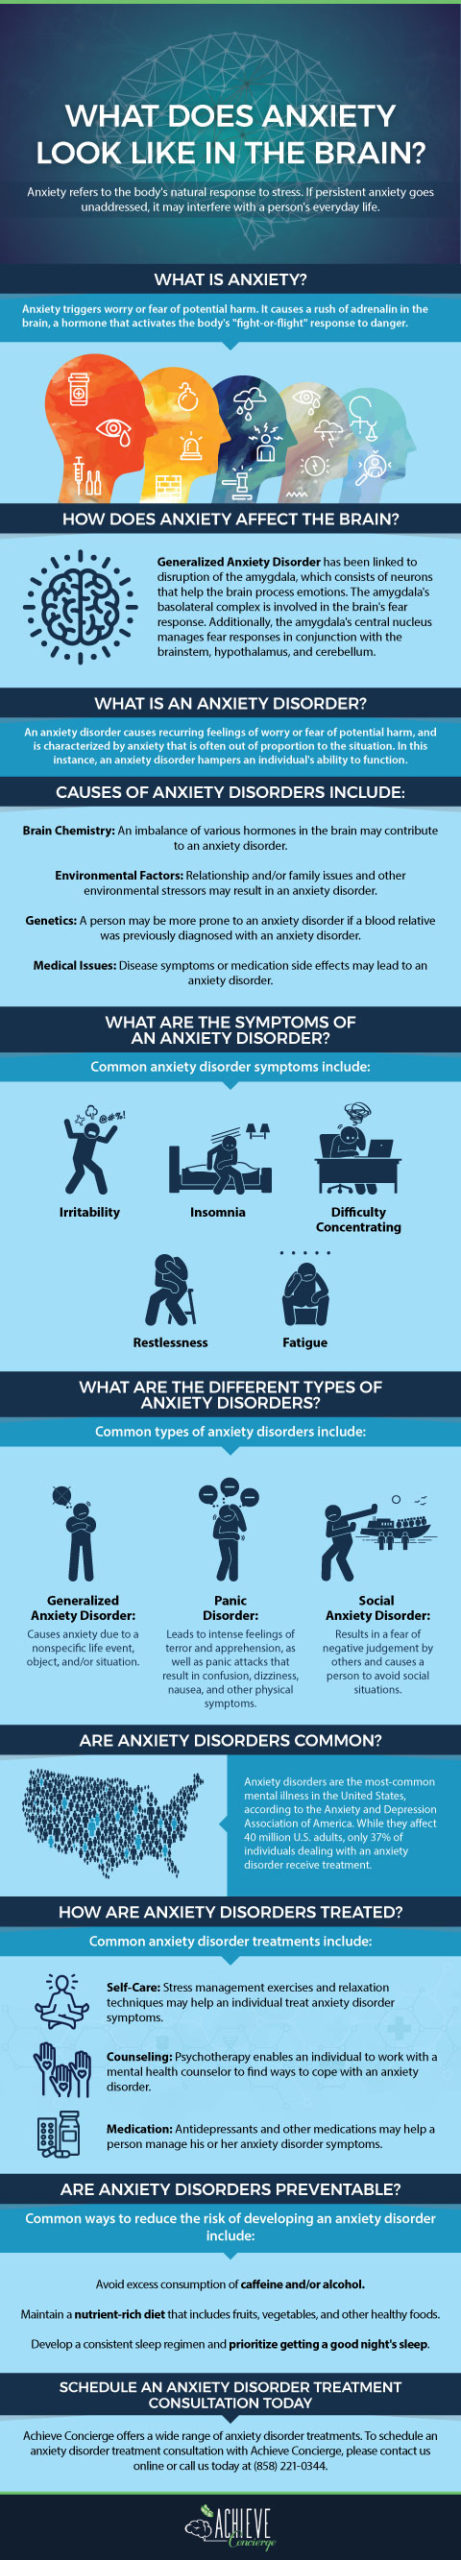 What Does Anxiety Look Like in the Brain?